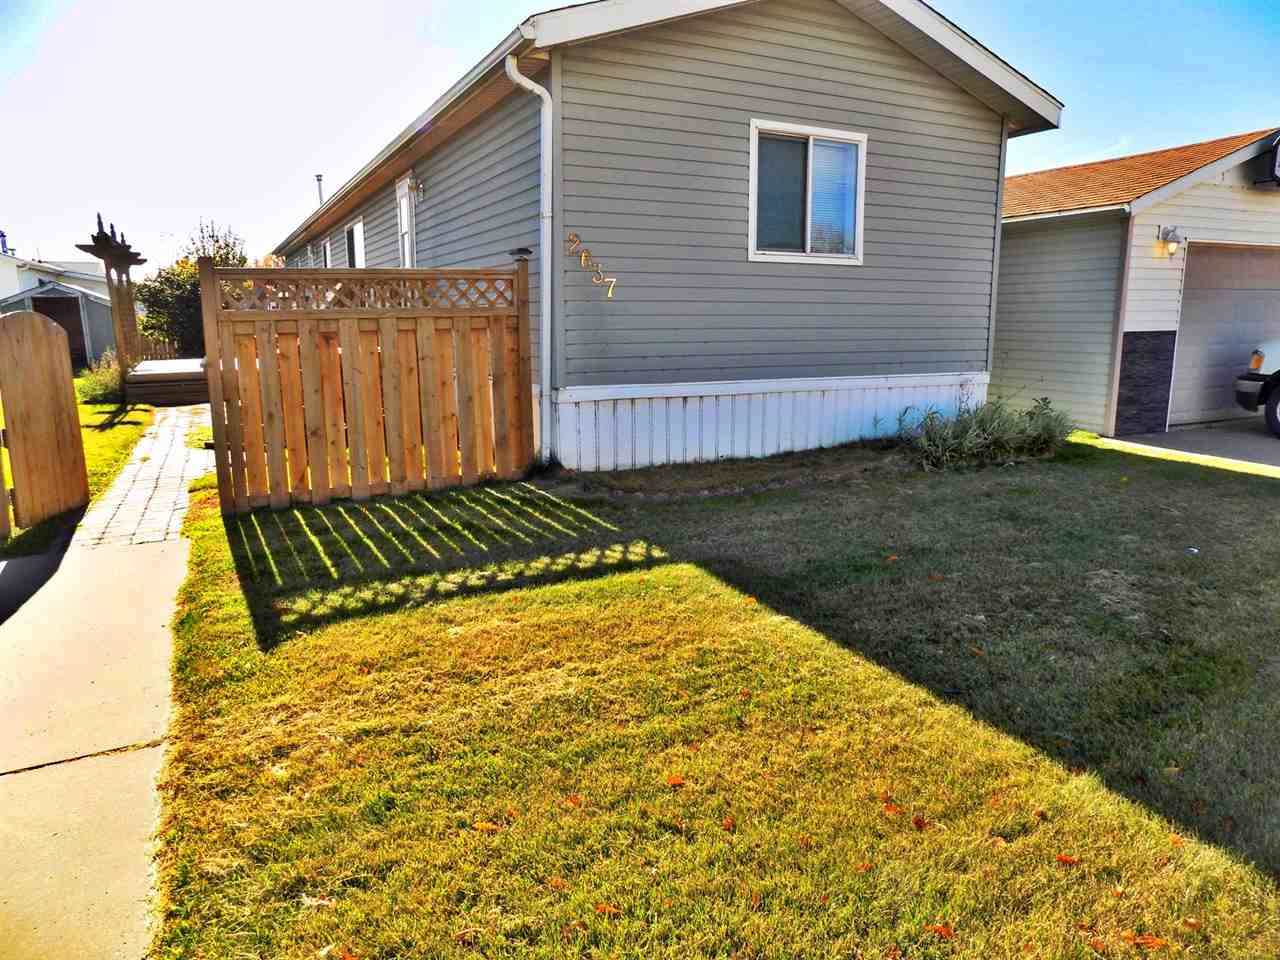 This is a great opportunity in the community of Westview village, located close to Winterburn Rd and 107 ave exclusive mobile home community. This mobile home is located on a very quiet road, it is spacious and comes with ample living space! This home has 3 large bedrooms and comes with 2 parking stalls. Has a very large living room with laminate flooring and a cozy centre fireplace. A good size kitchen comes with appliances, lots of cabinetry, 2 sinks with lots of counter top space, adjoining large dining room. The large master bedroom comes with a walk-in closet and 4 p/c ensuite bathroom with soaker tub. There are an additional 2 good sized bedrooms accompany this home all on one level. The large yard comes with a spacious deck to enjoy those long hot summers. This home is close to all amenities including shopping, restaurants and highways.